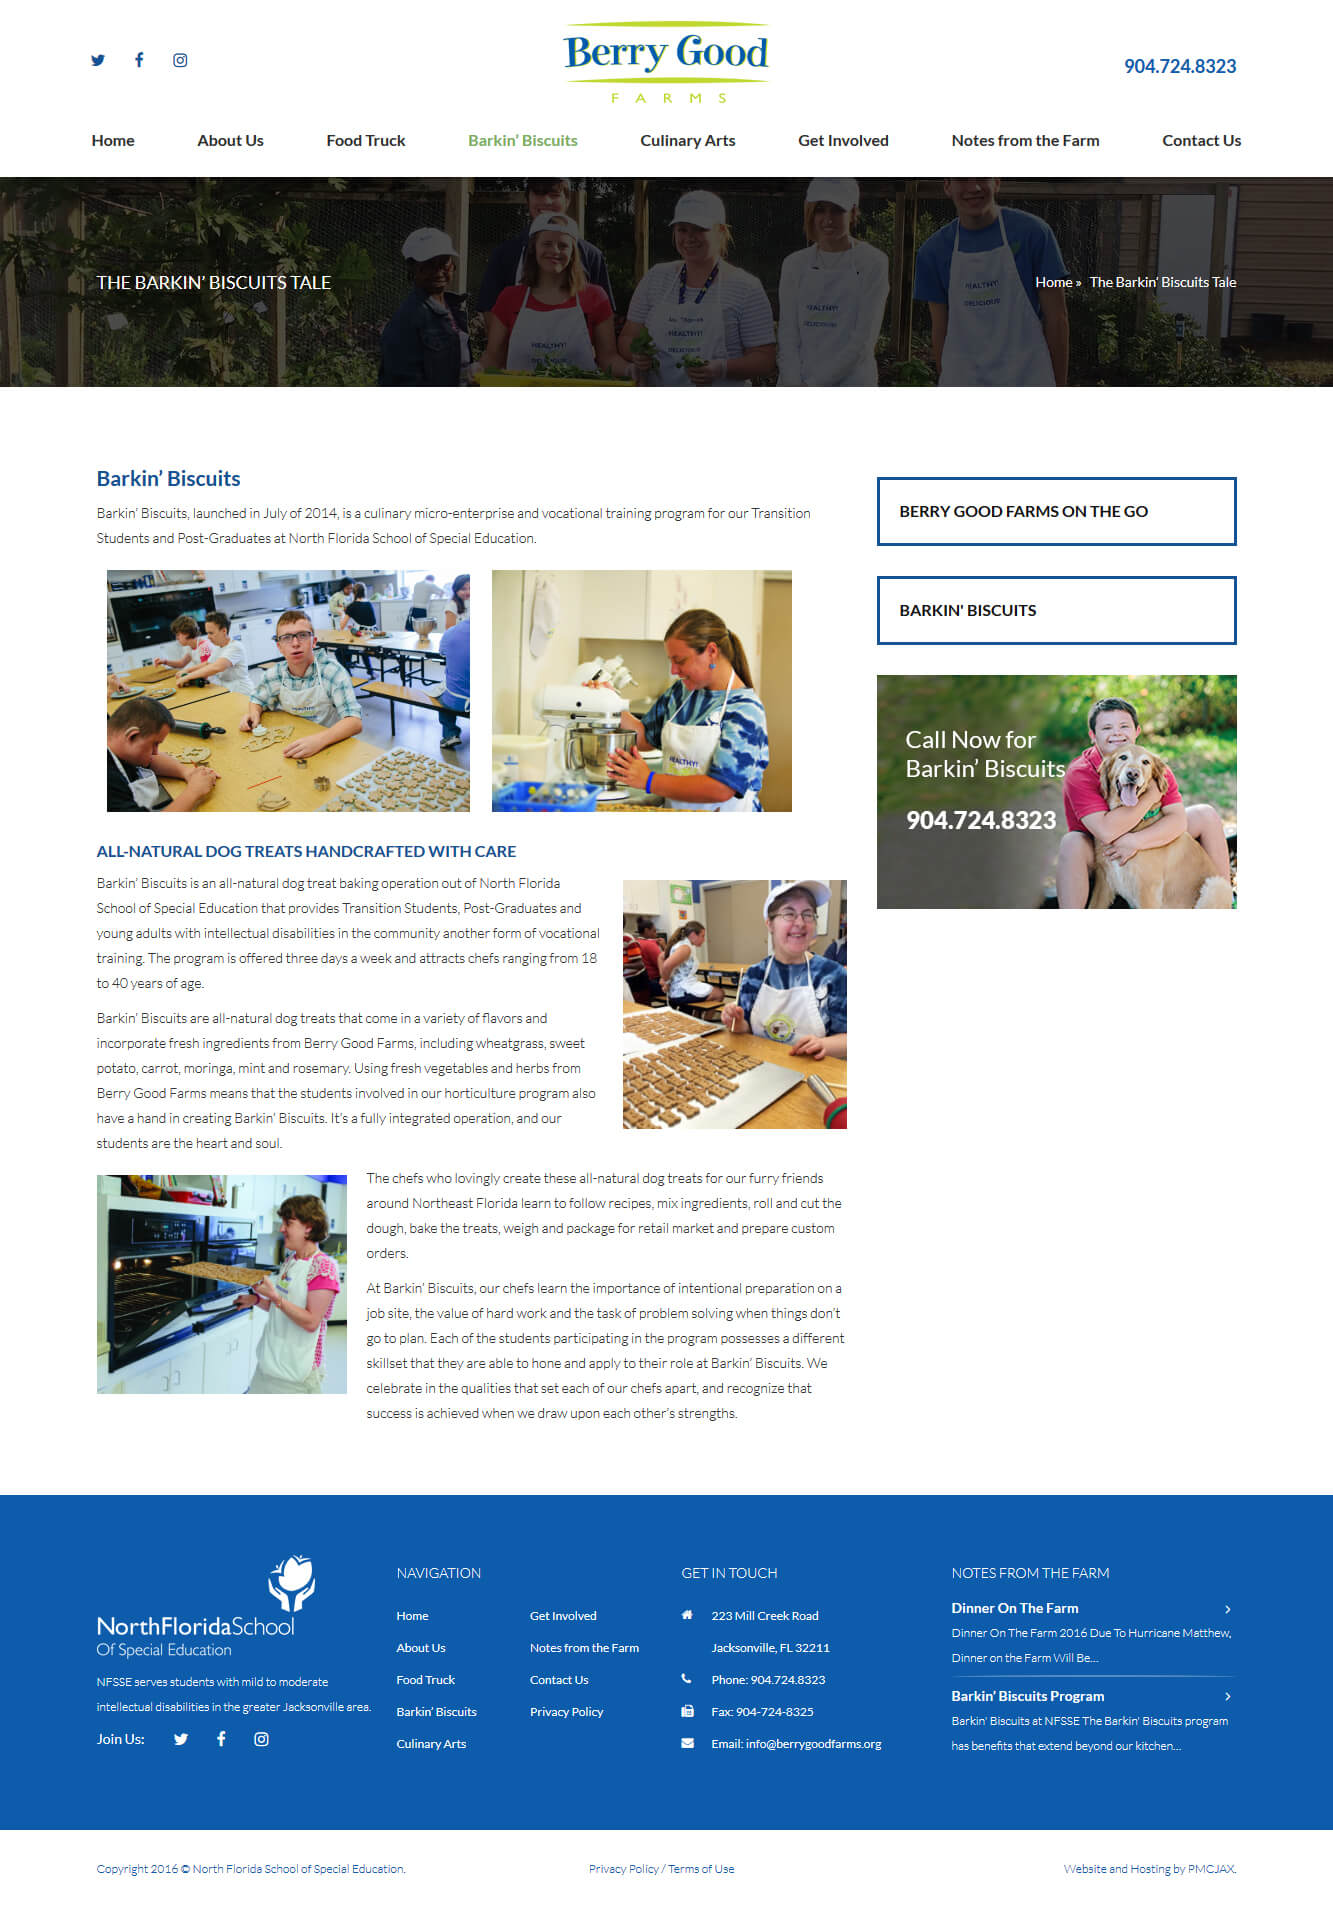 Website design for nonprofit organizations in Jacksonville FL